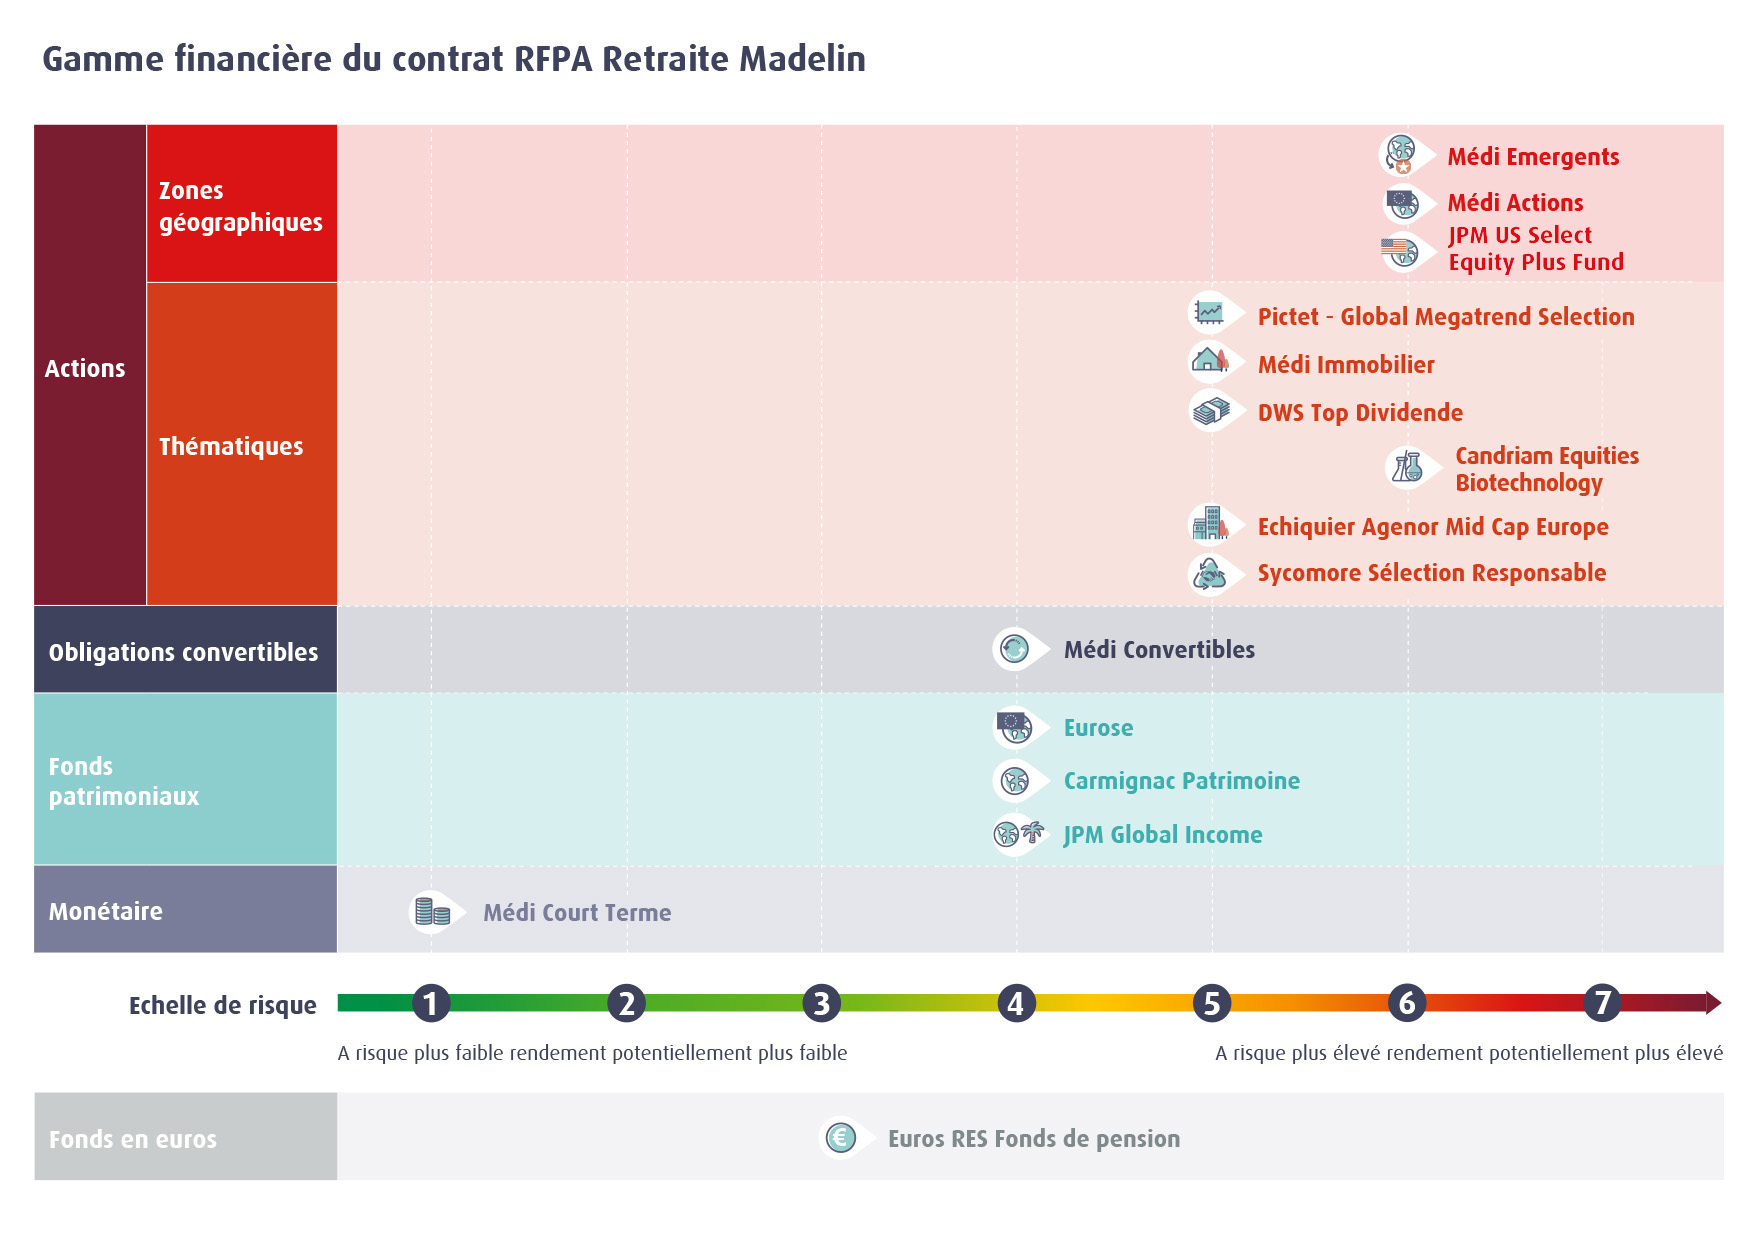 Infographie gamme financière Madelin